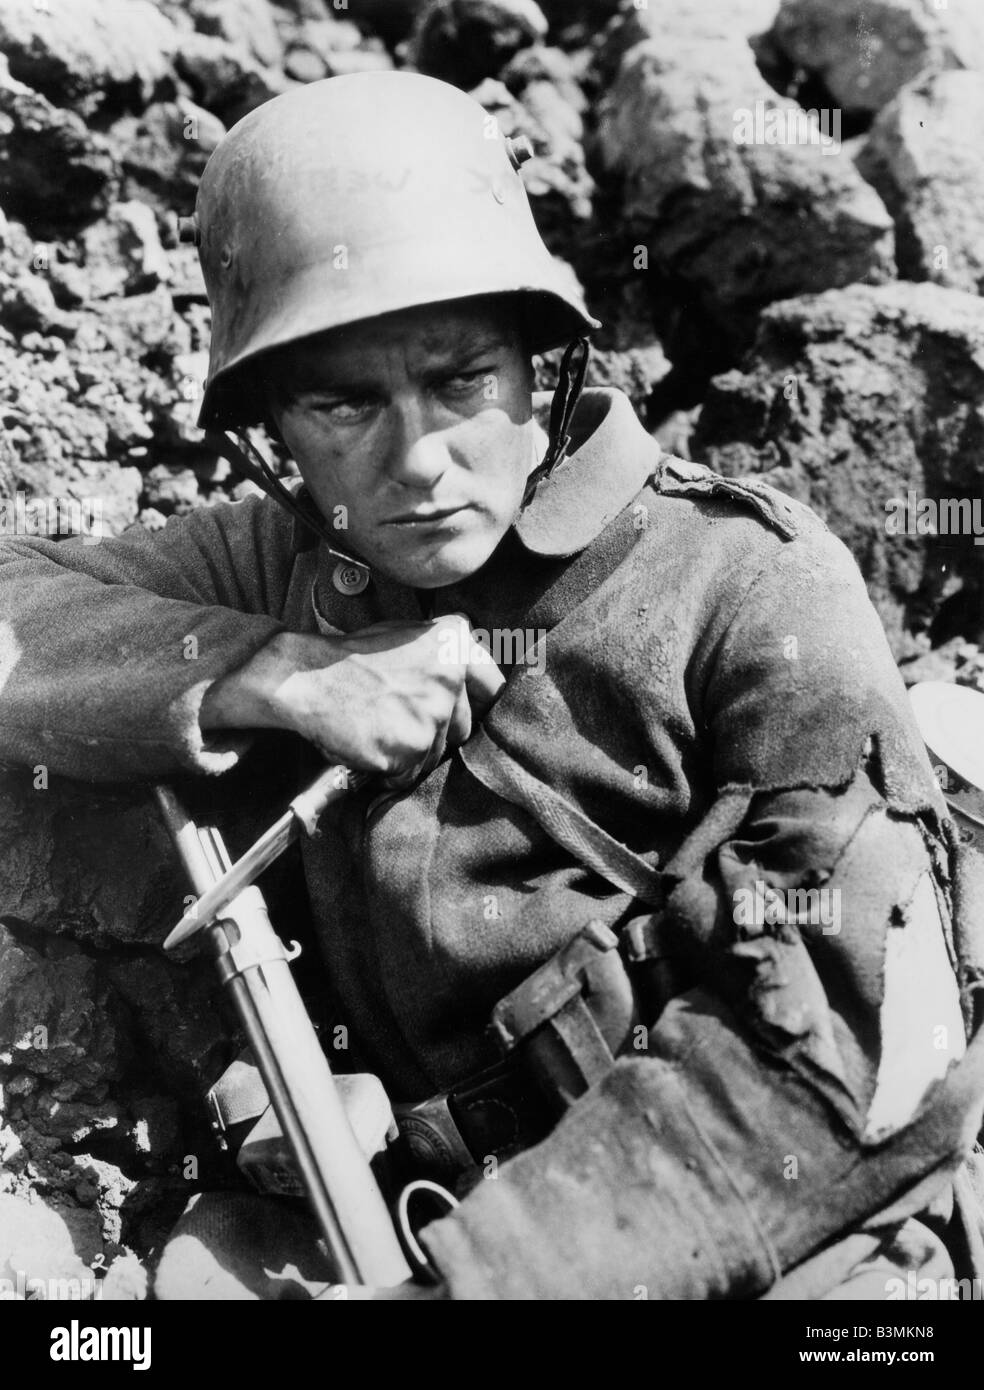 ALL QUIET ON THE WESTERN FRONT 1930 Universal film with Lew Ayres - Stock Image